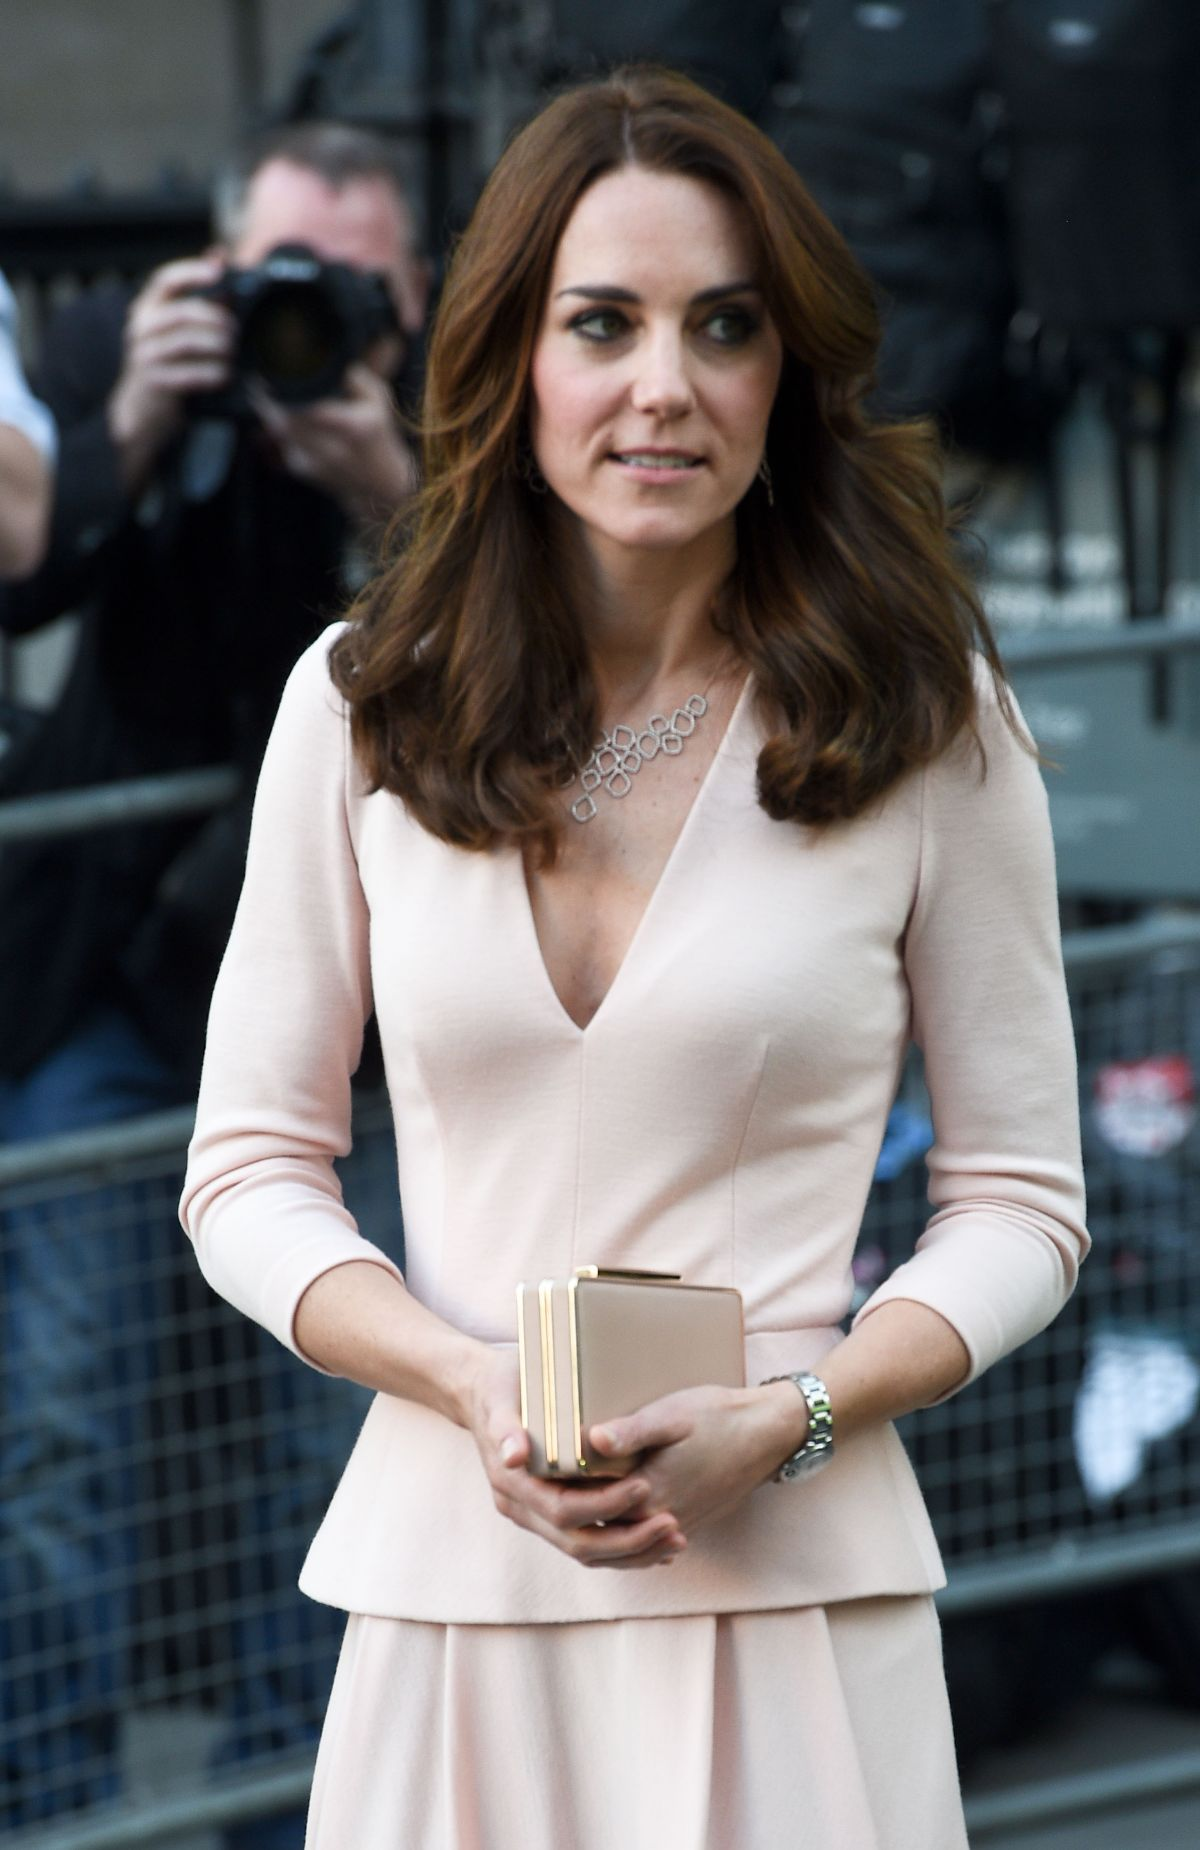 KATE MIDDLETON at National Portrait Gallery in London 05/04/2016 - HawtCelebs